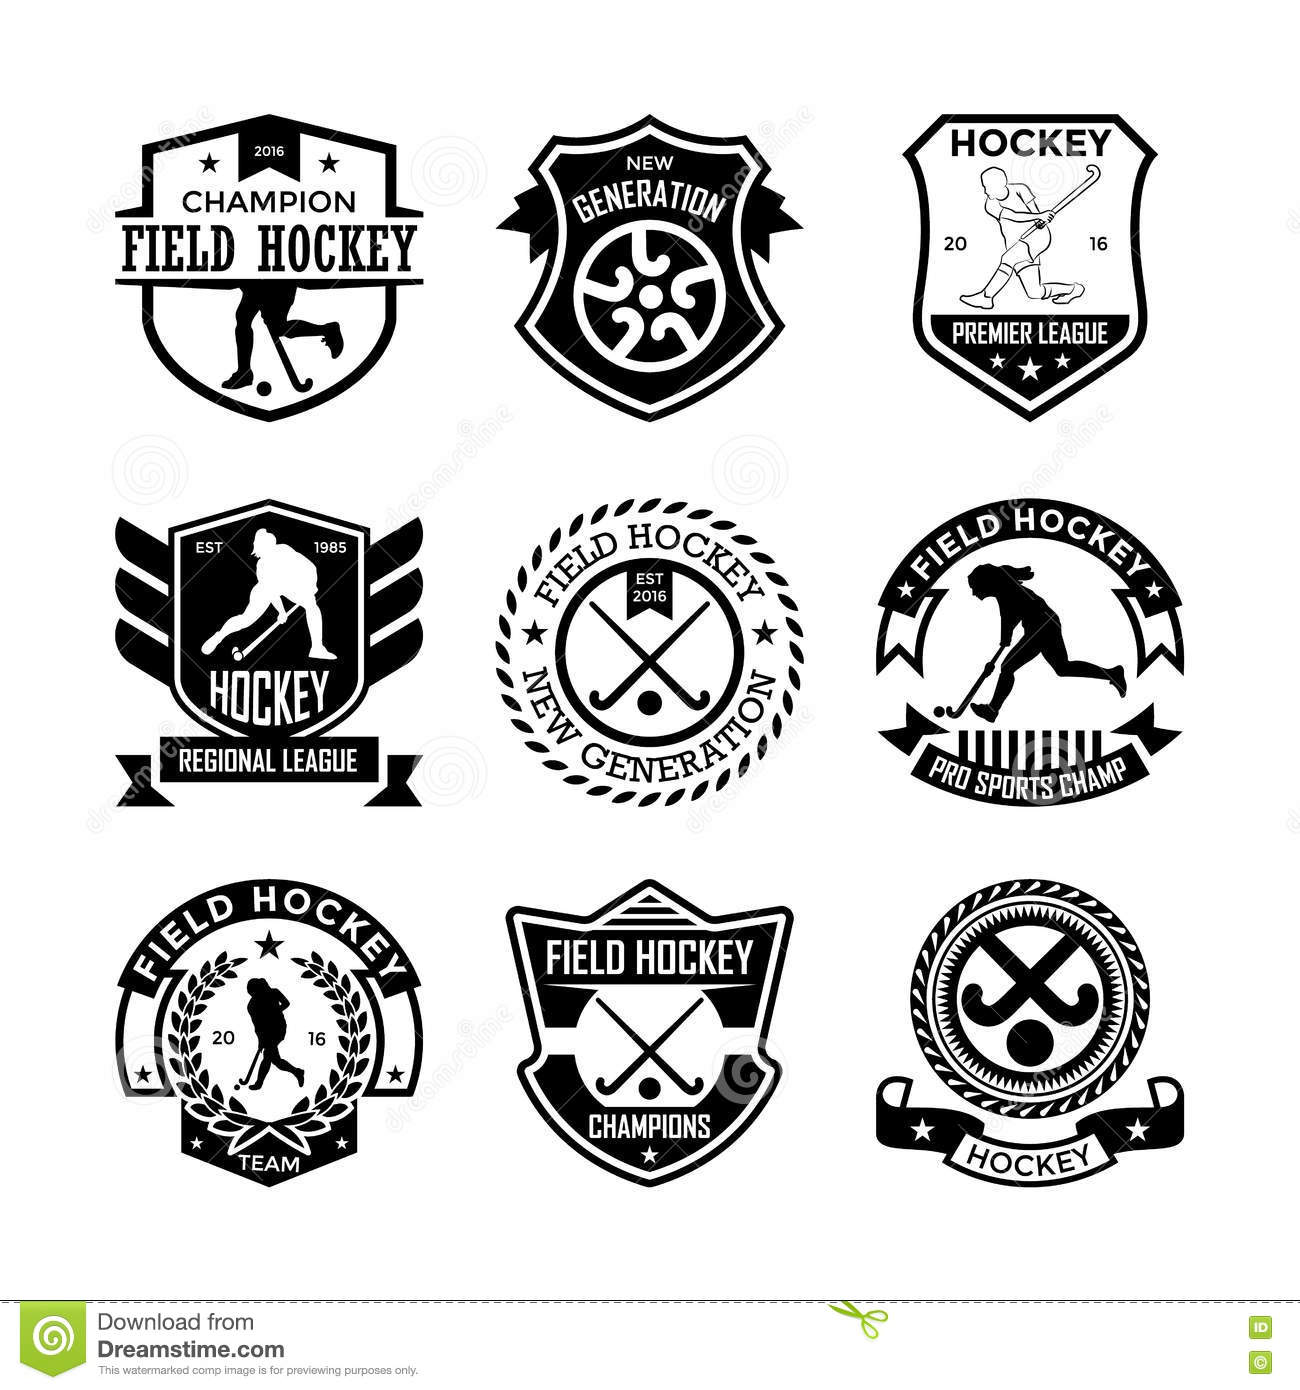 Field hockey vector icons 14 stock illustration illustration of field hockey vector icons 14 biocorpaavc Image collections